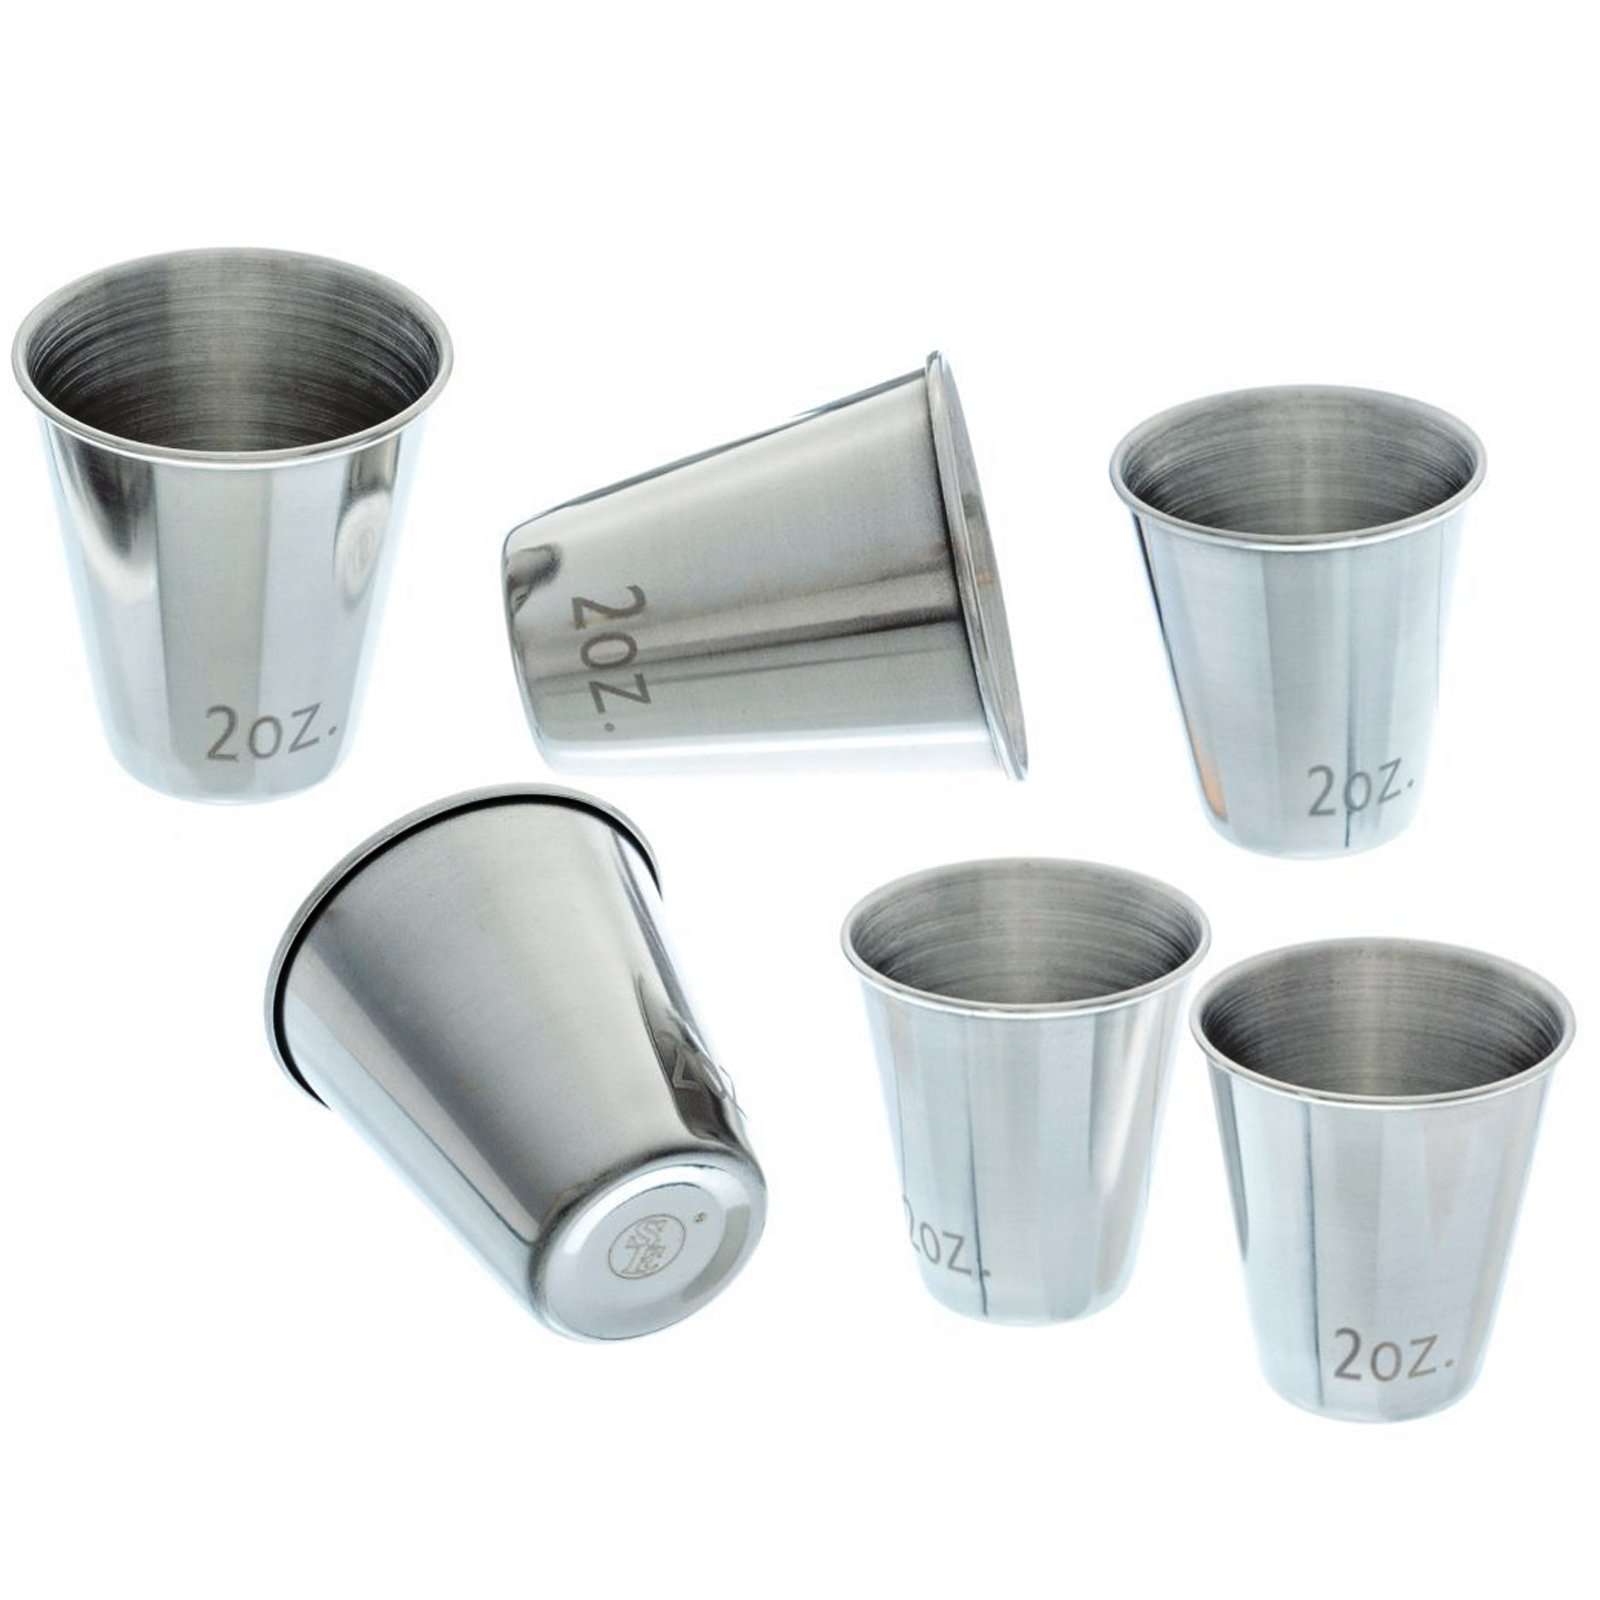 6pc Stainless Steel Shot Glass Set by ASR Outdoor